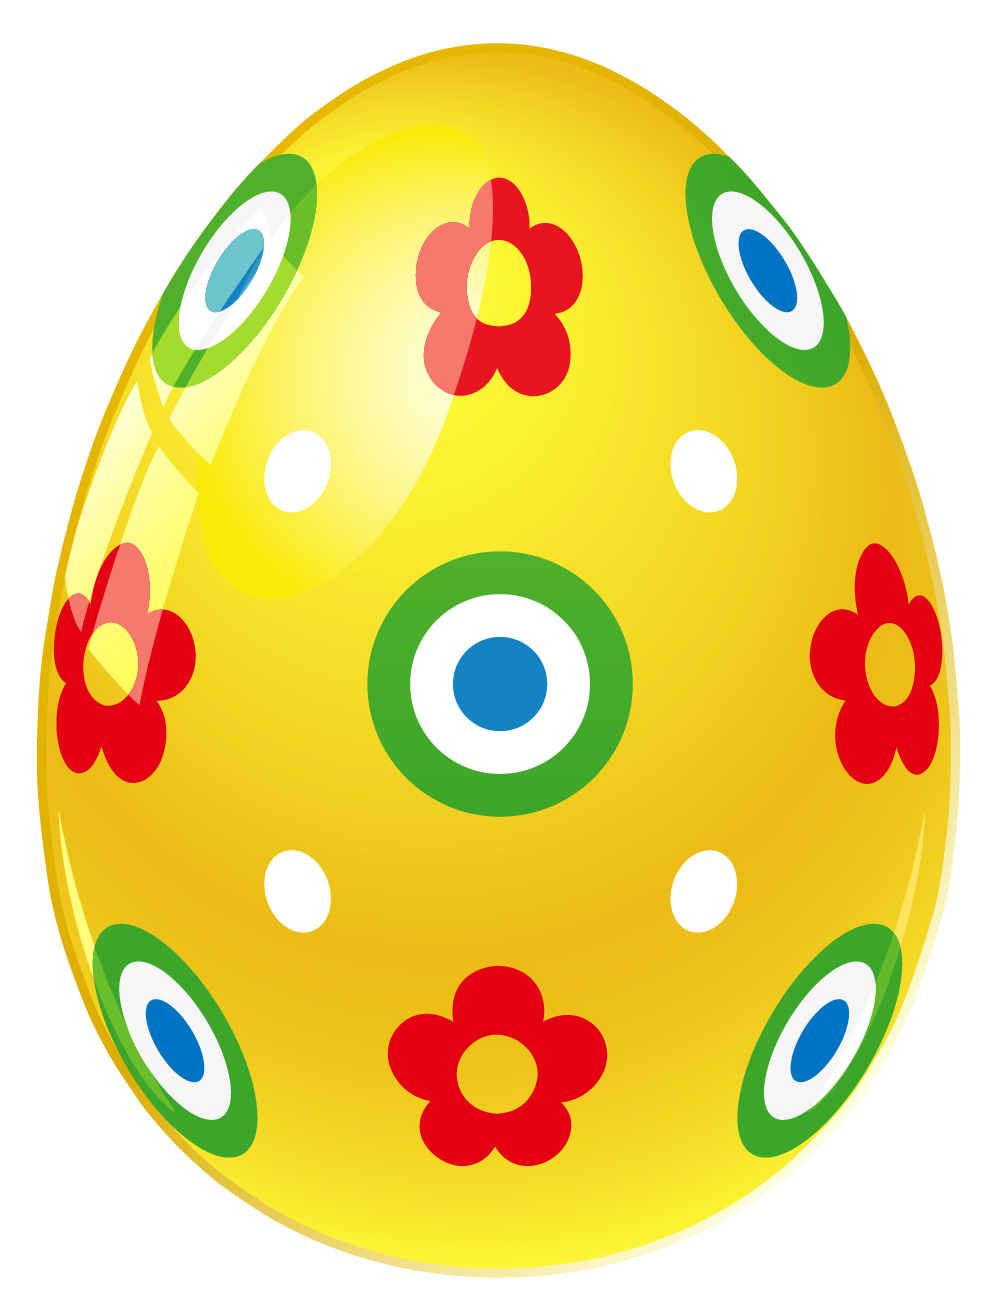 Easter Egg Images | Free download on ClipArtMag